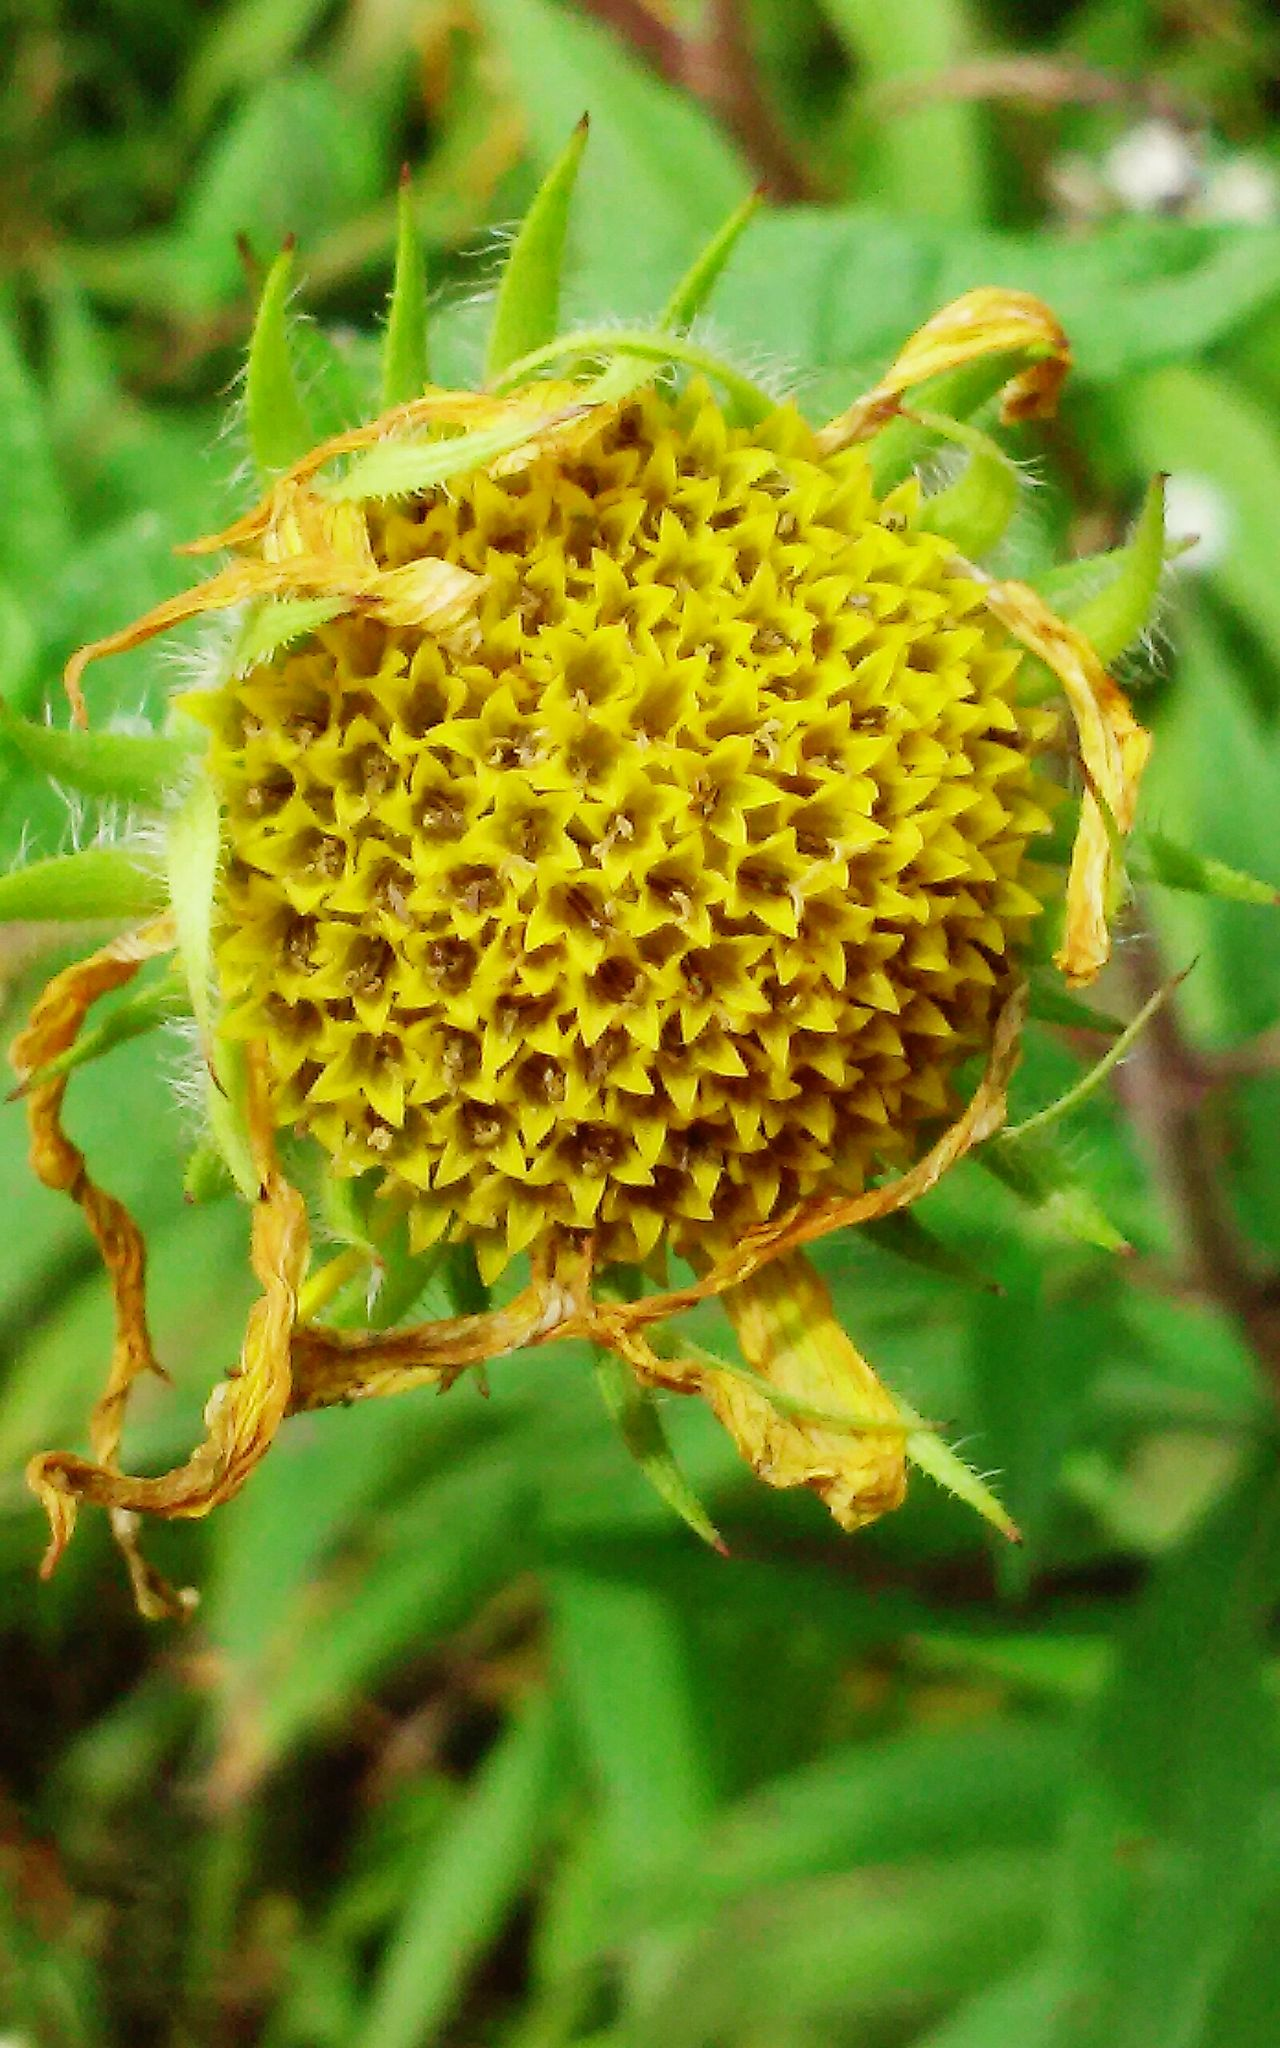 Taking Photos Enjoying Life The Circle Of Life End Of Season  Flower Yellow Flower Dying Early Fall Details Of My Life The Purist (no Edit, No Filter)